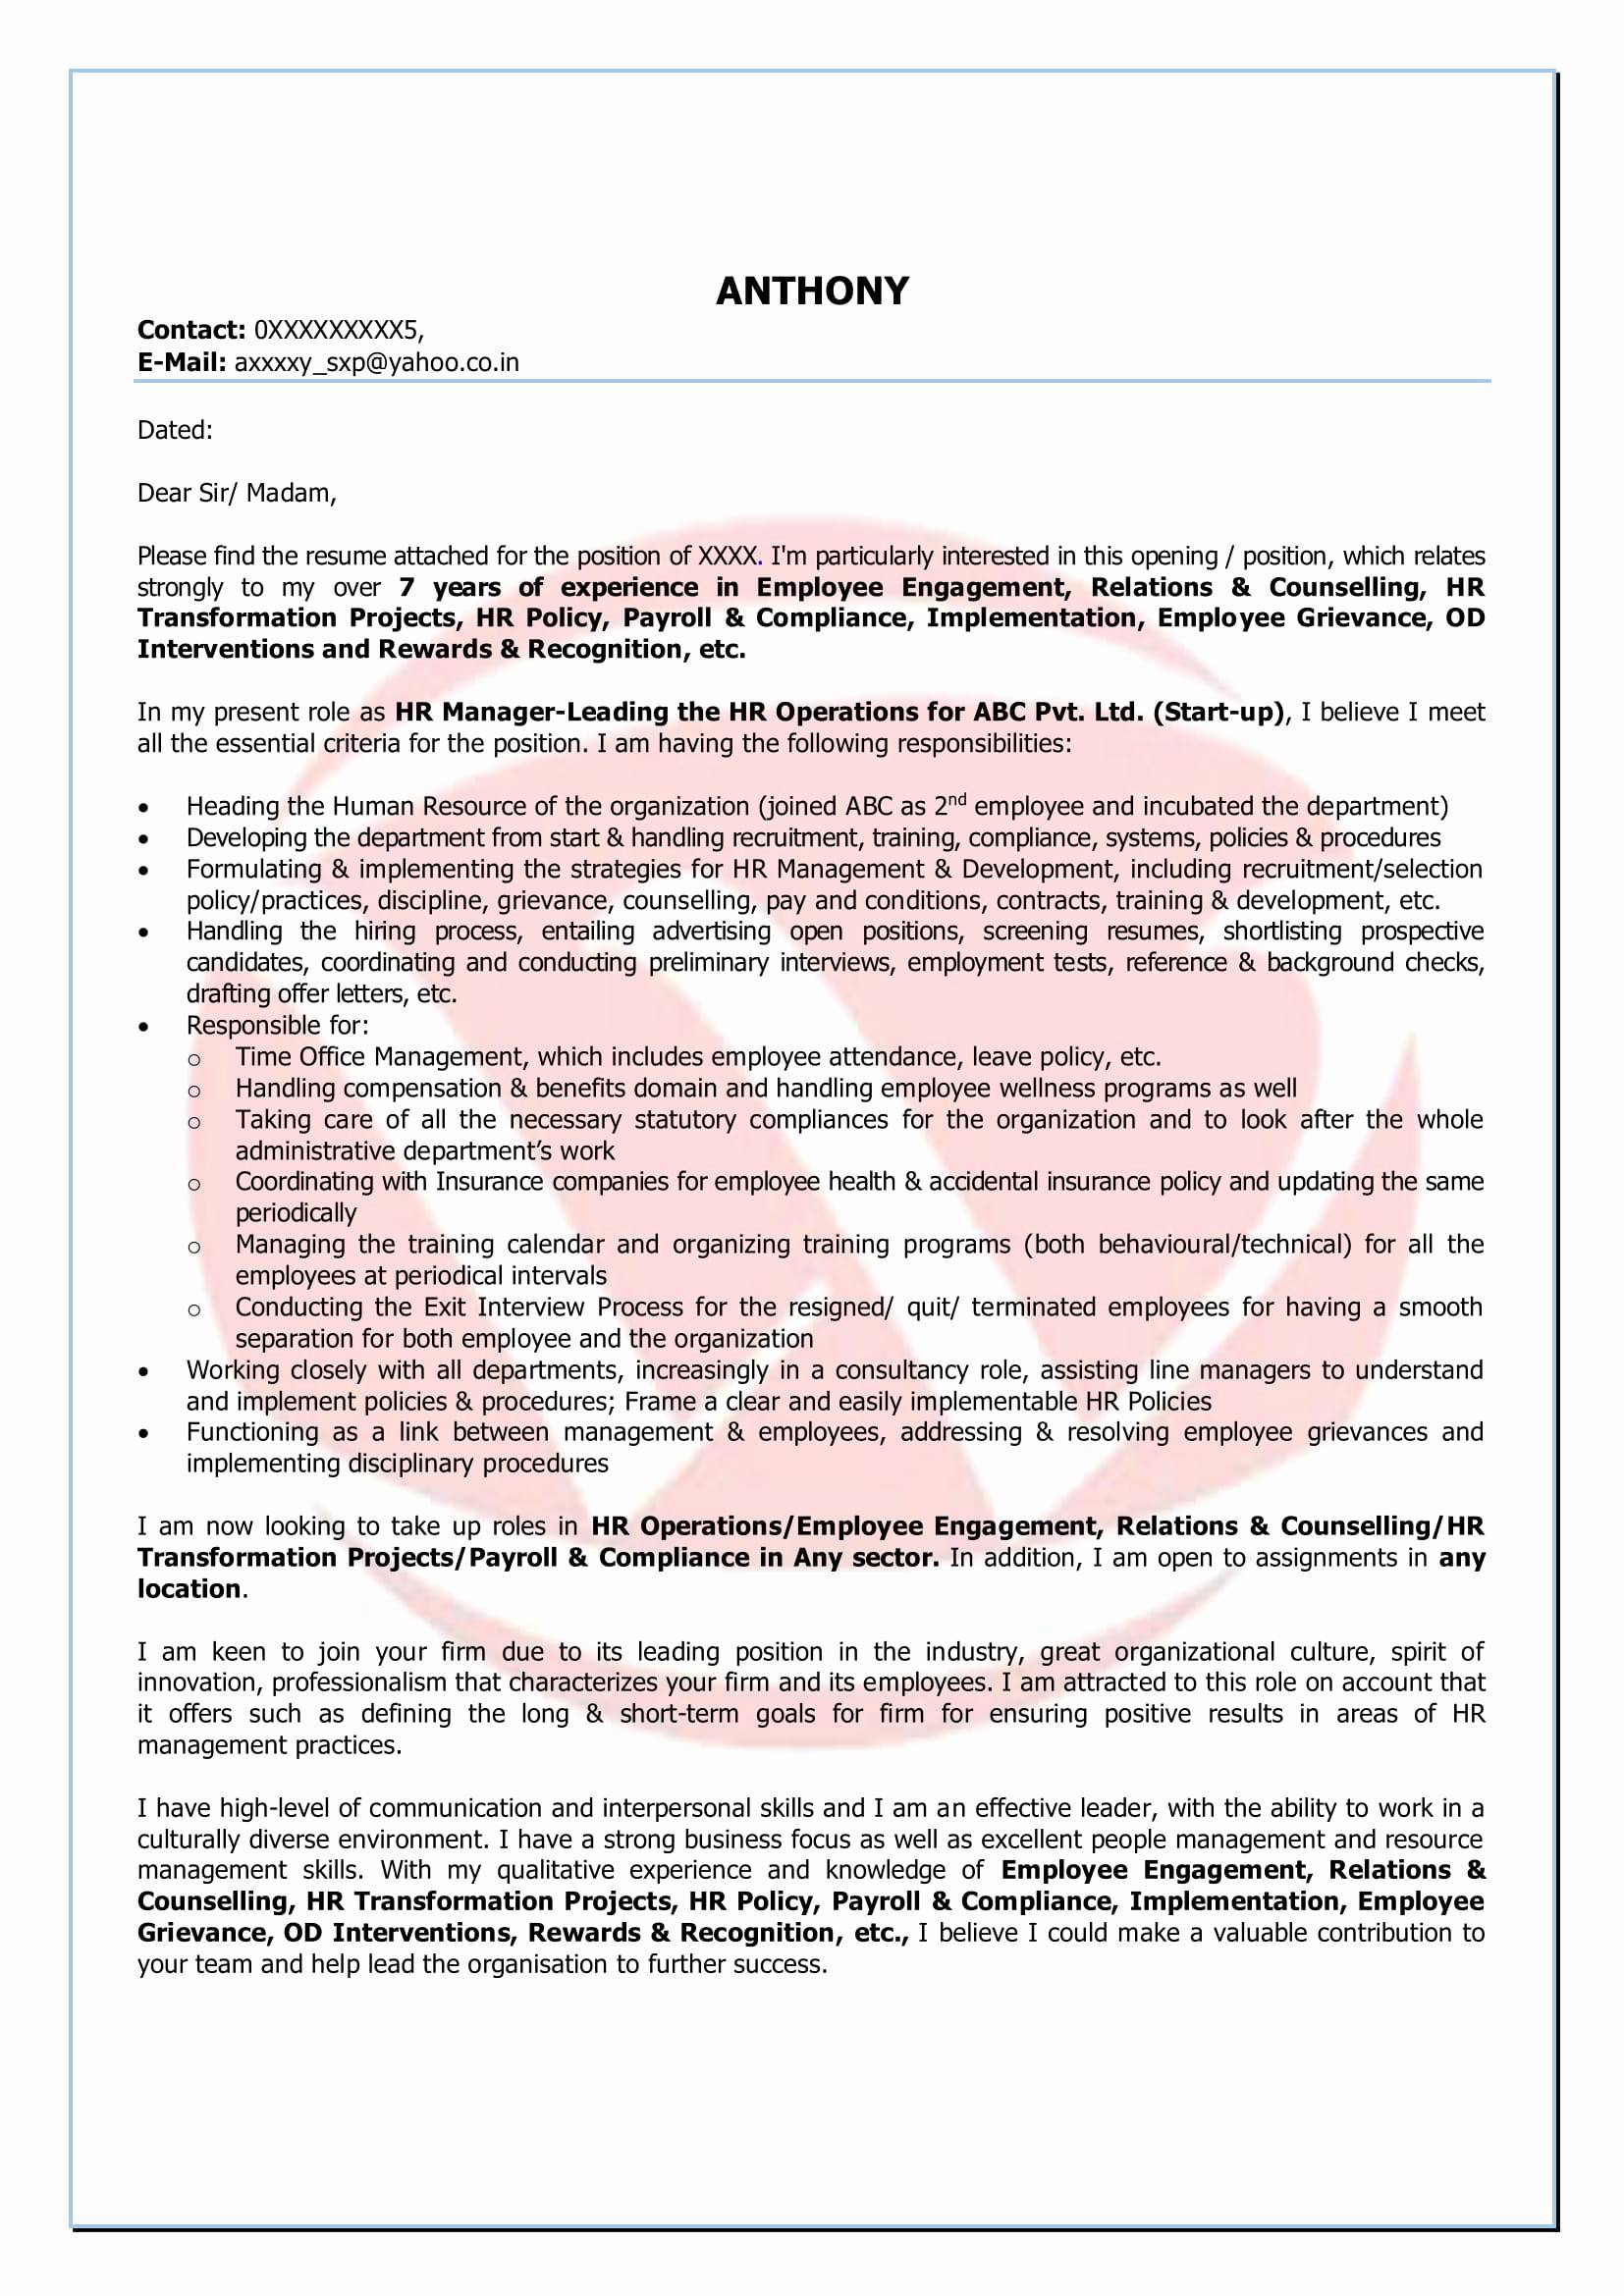 Finance Cover Letter Template - How to Write A Finance Cover Letter Luxury Hr Sample Cover Letter